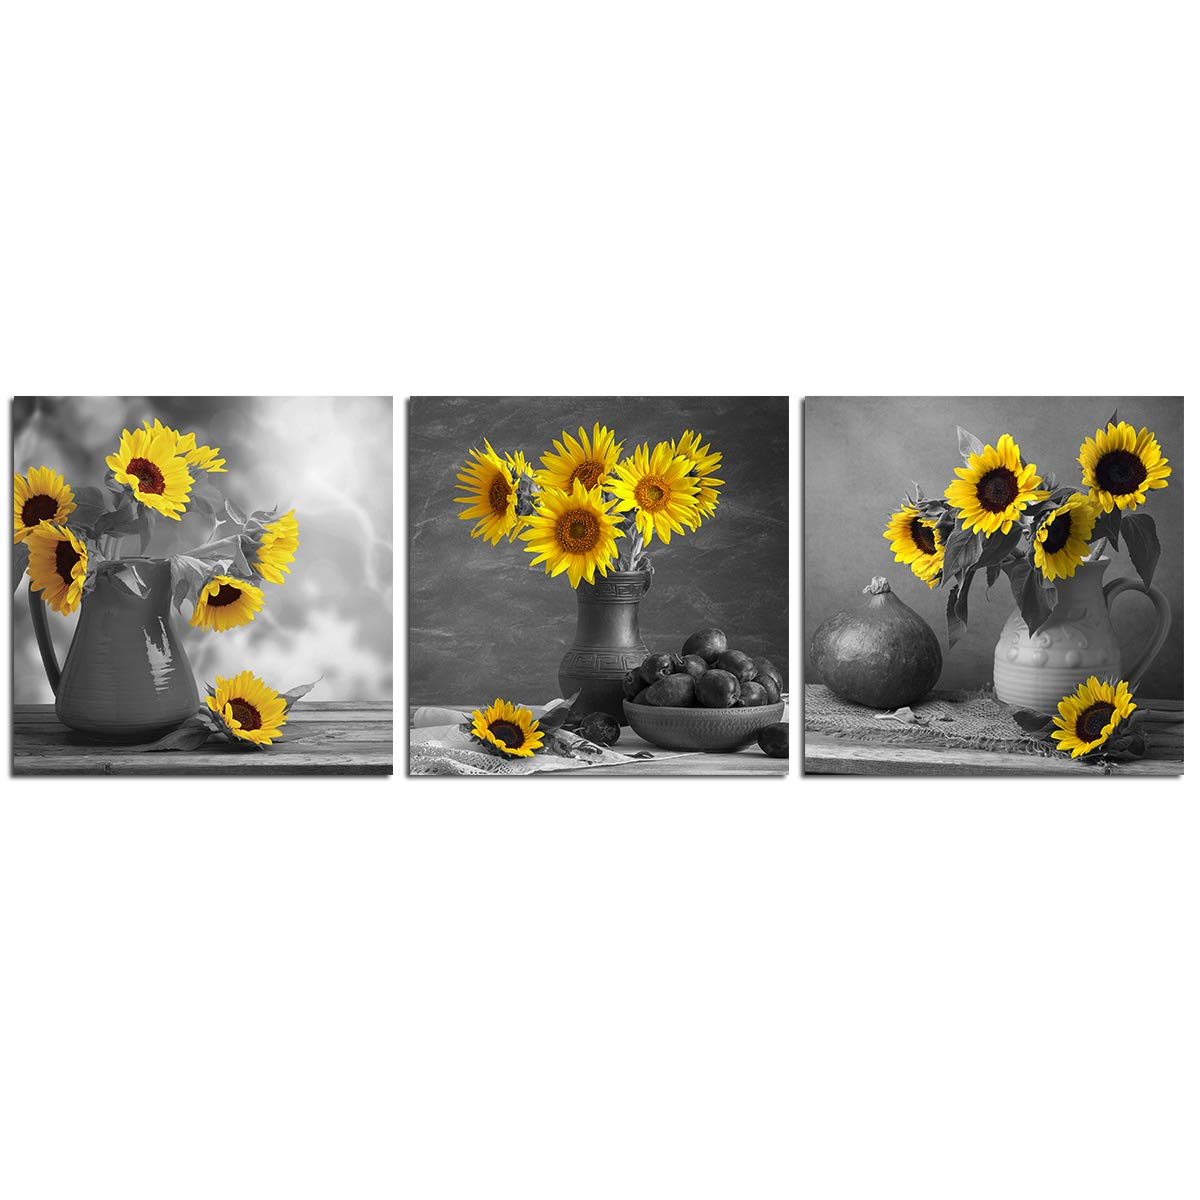 Black White Sunflower Wall Art Yellow Floral Canvas Painting Simple Life 12 X12 3 Piece Flower Artwork Pictures For Living Room Decoration Home Kitchen Decor Unframed Modern Giclee Print Buy Online